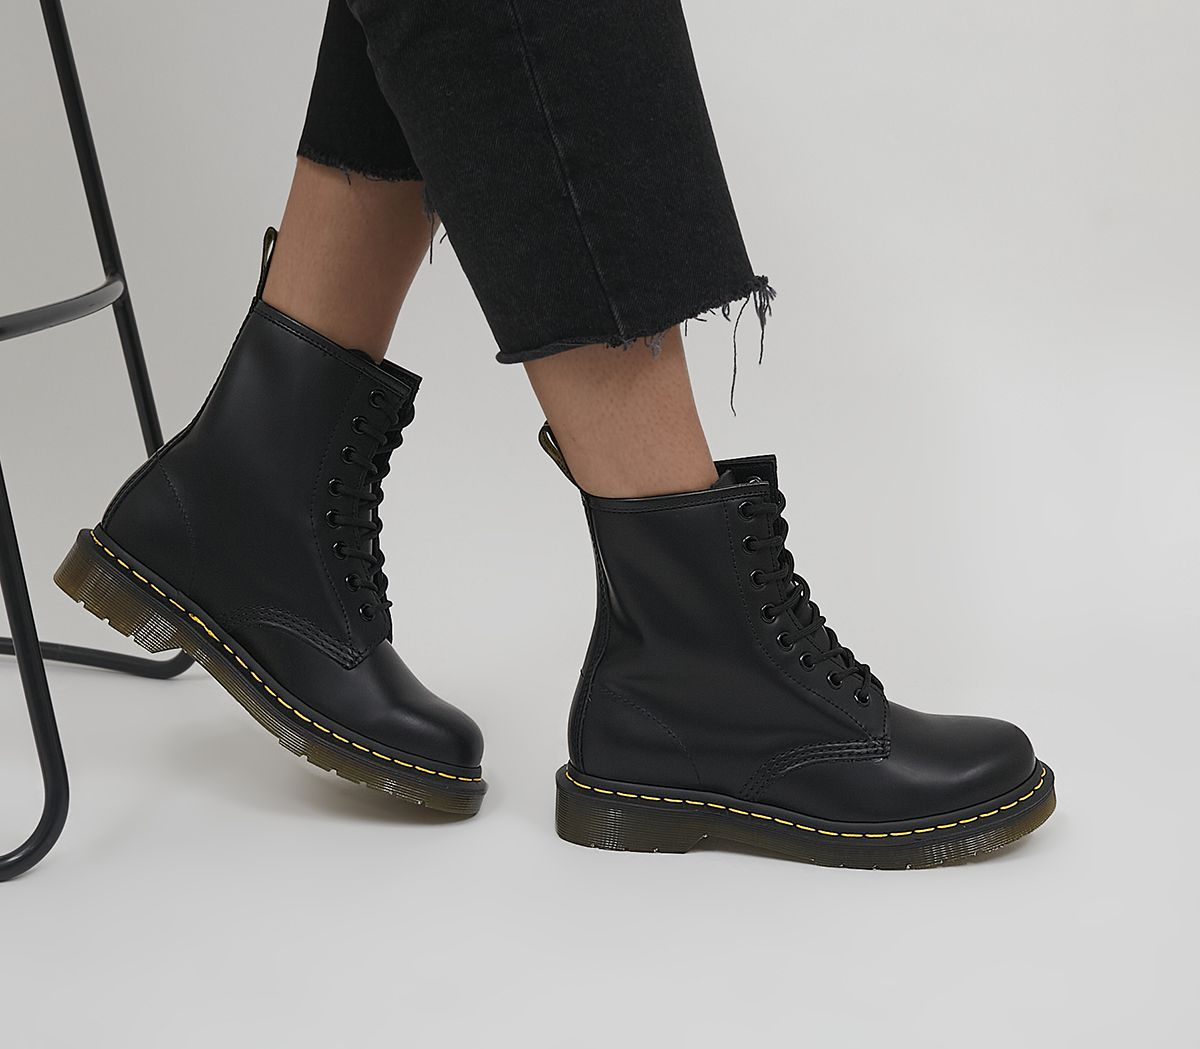 7ce567a3fd8 8 Eyelet Lace Up Boots